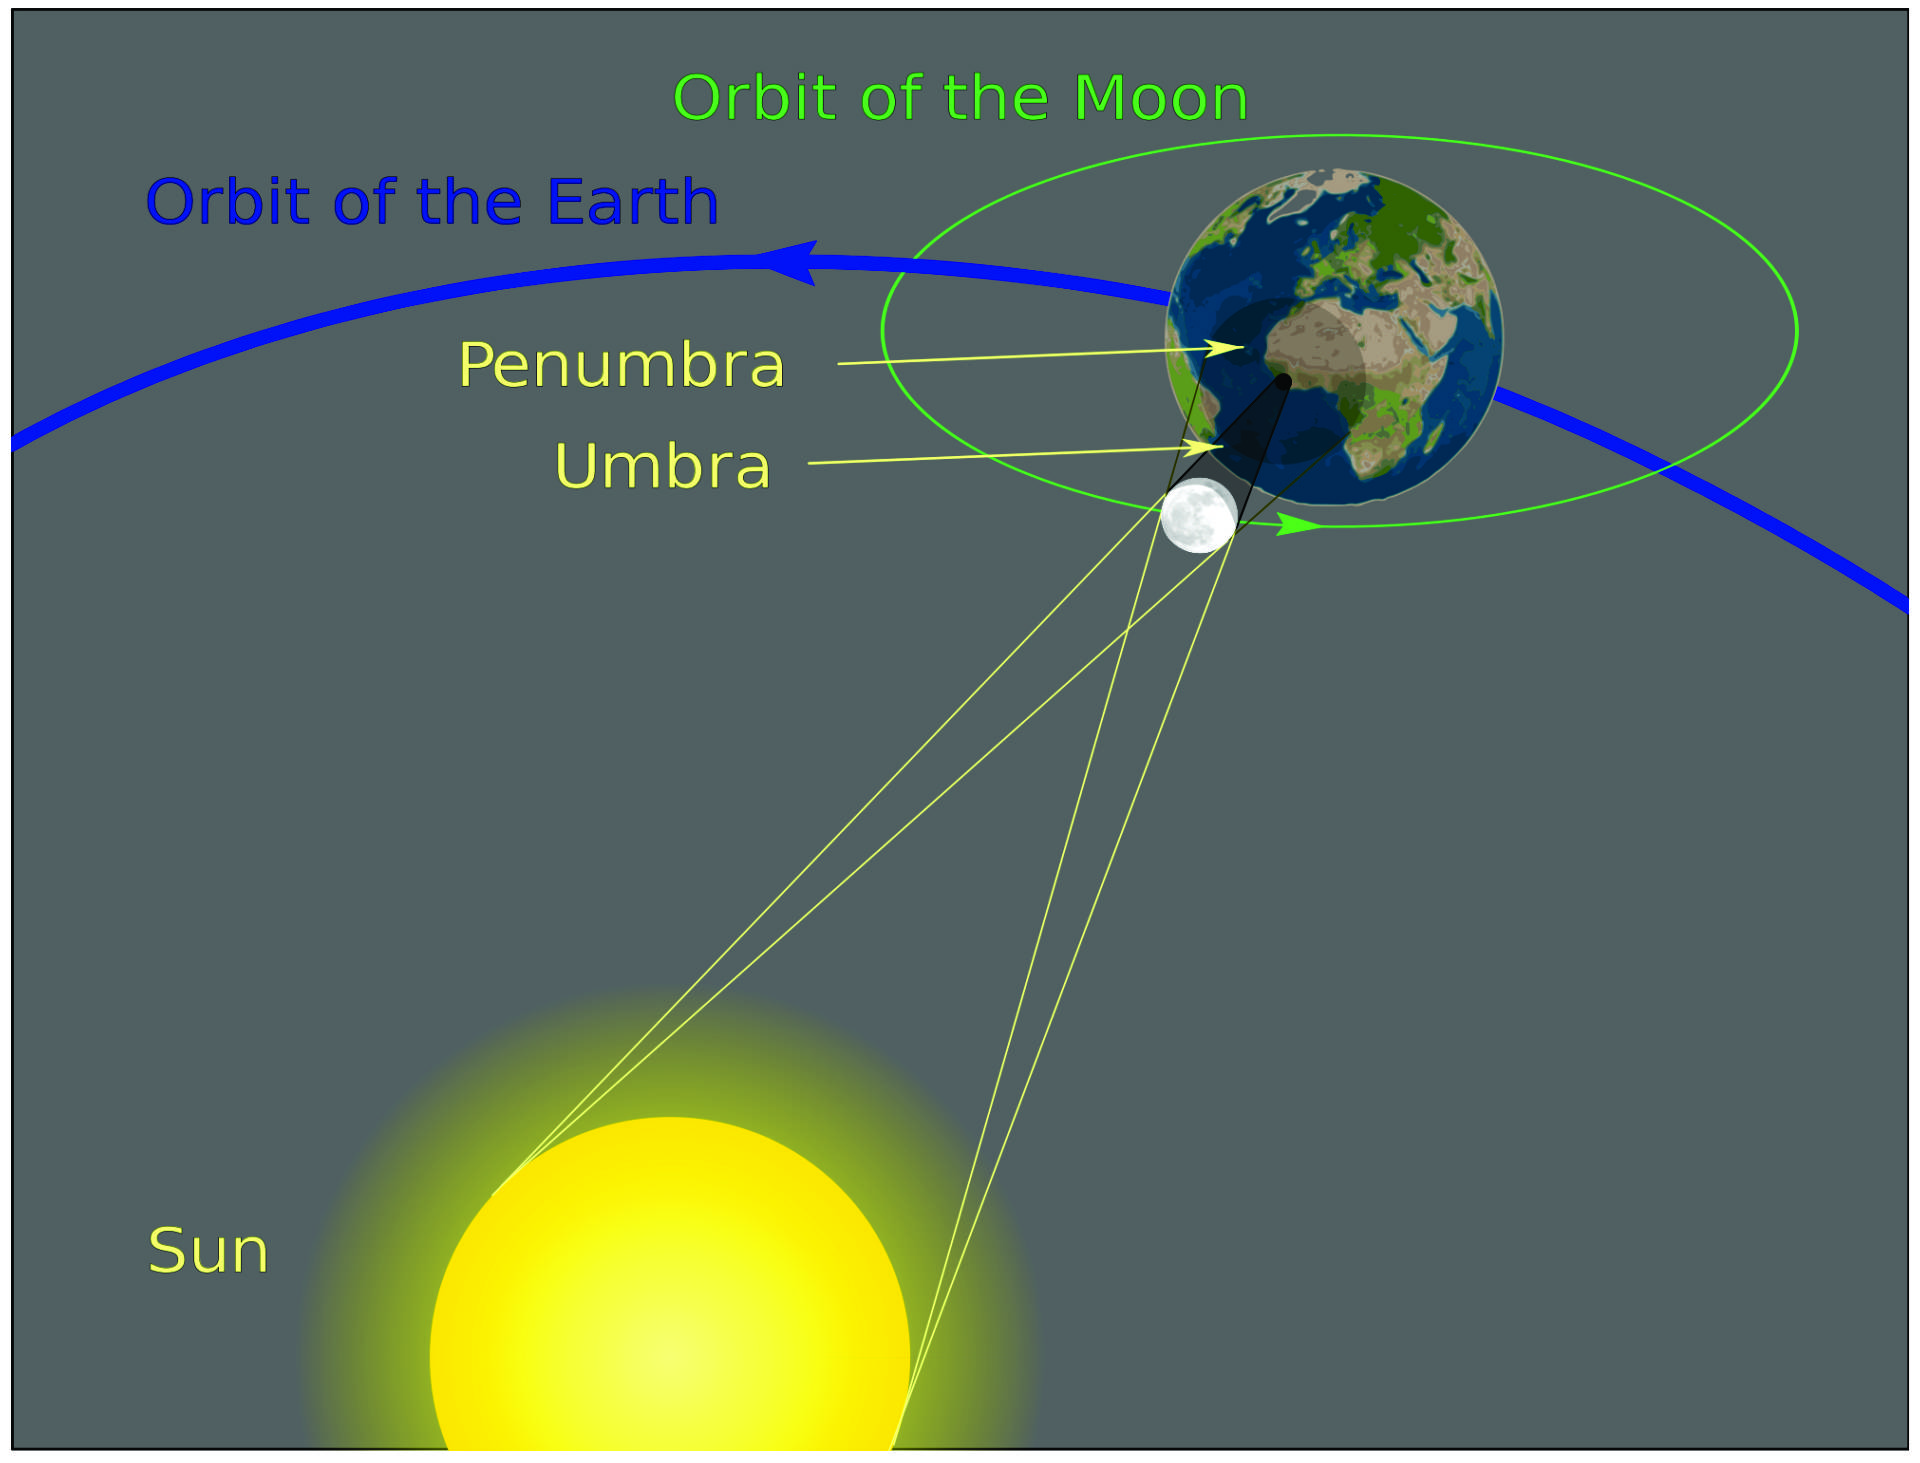 Starry night 7 newsletter professional astronomy telescope the outer part of the moons shadow where only some of the suns light is blocked is known as the penumbra observers on the earth in the penumbra shadow pooptronica Image collections